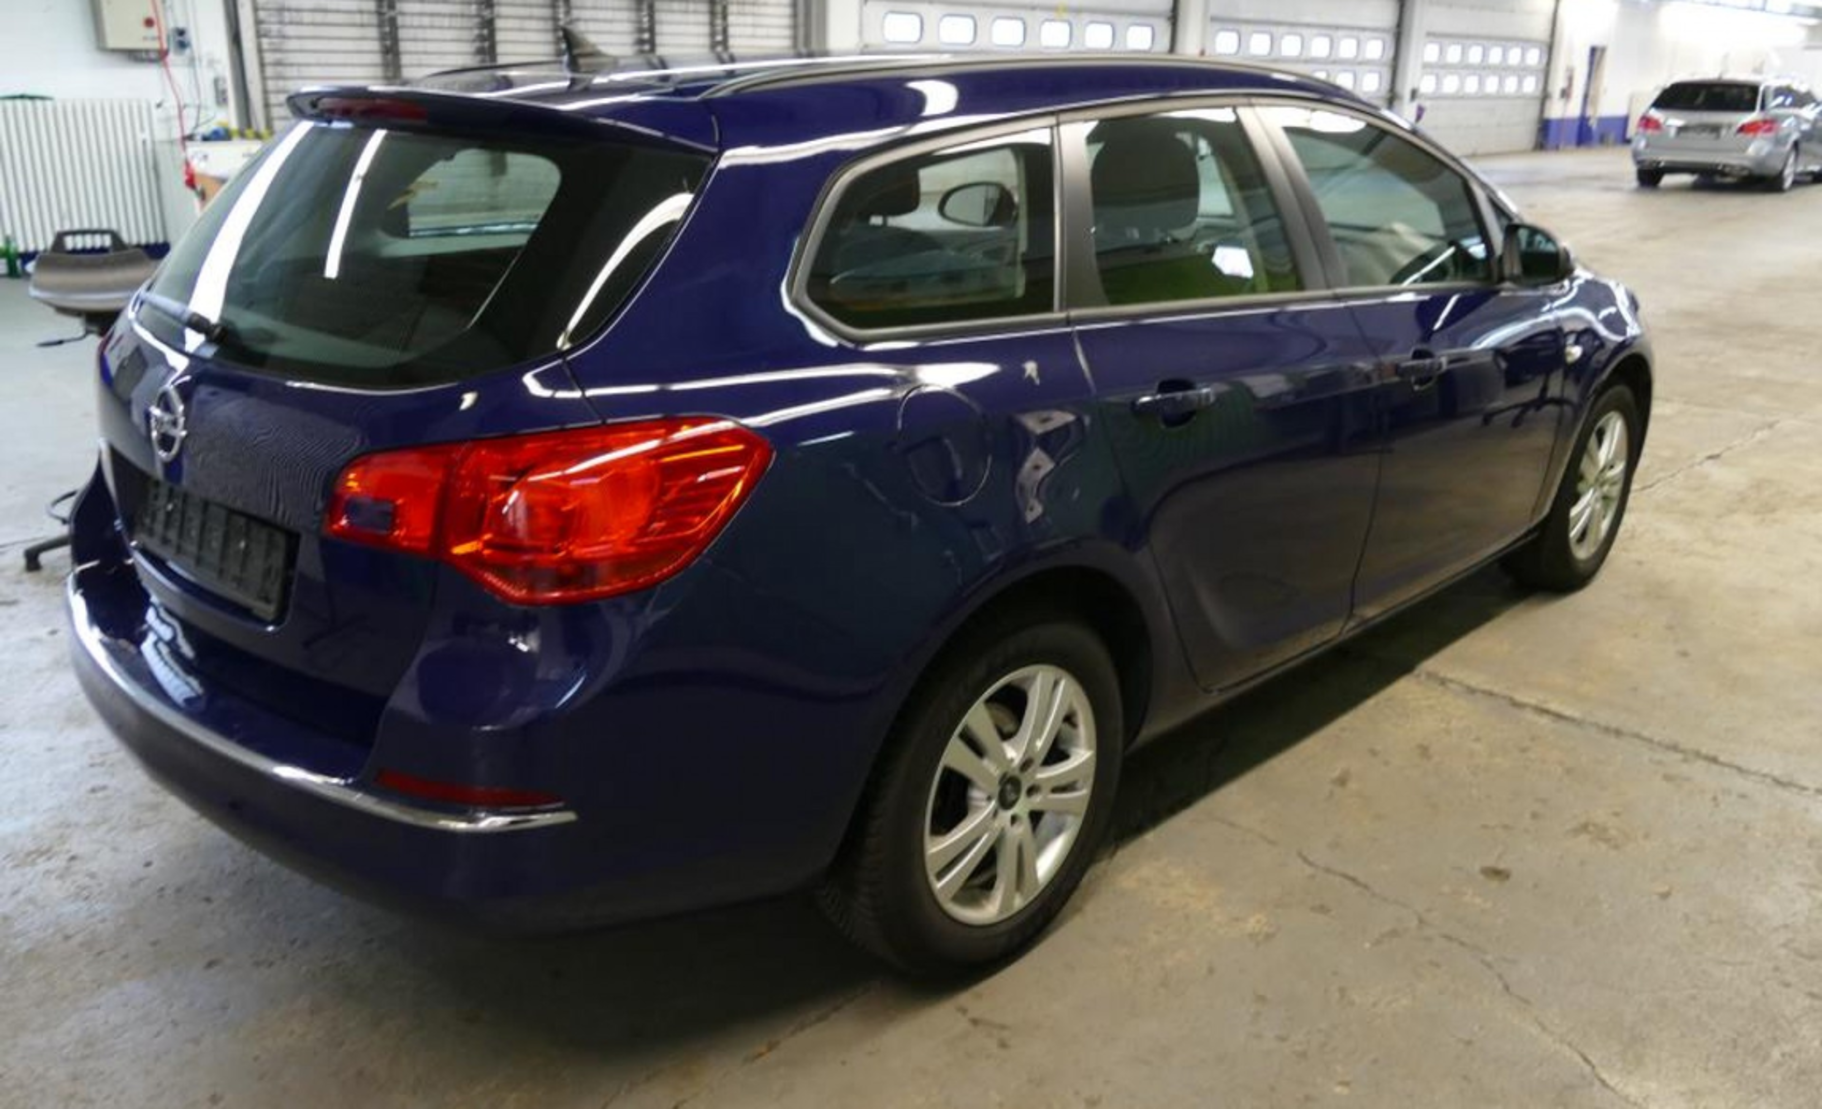 Opel Astra 1.6 Sports Tourer Selection (479265) detail2